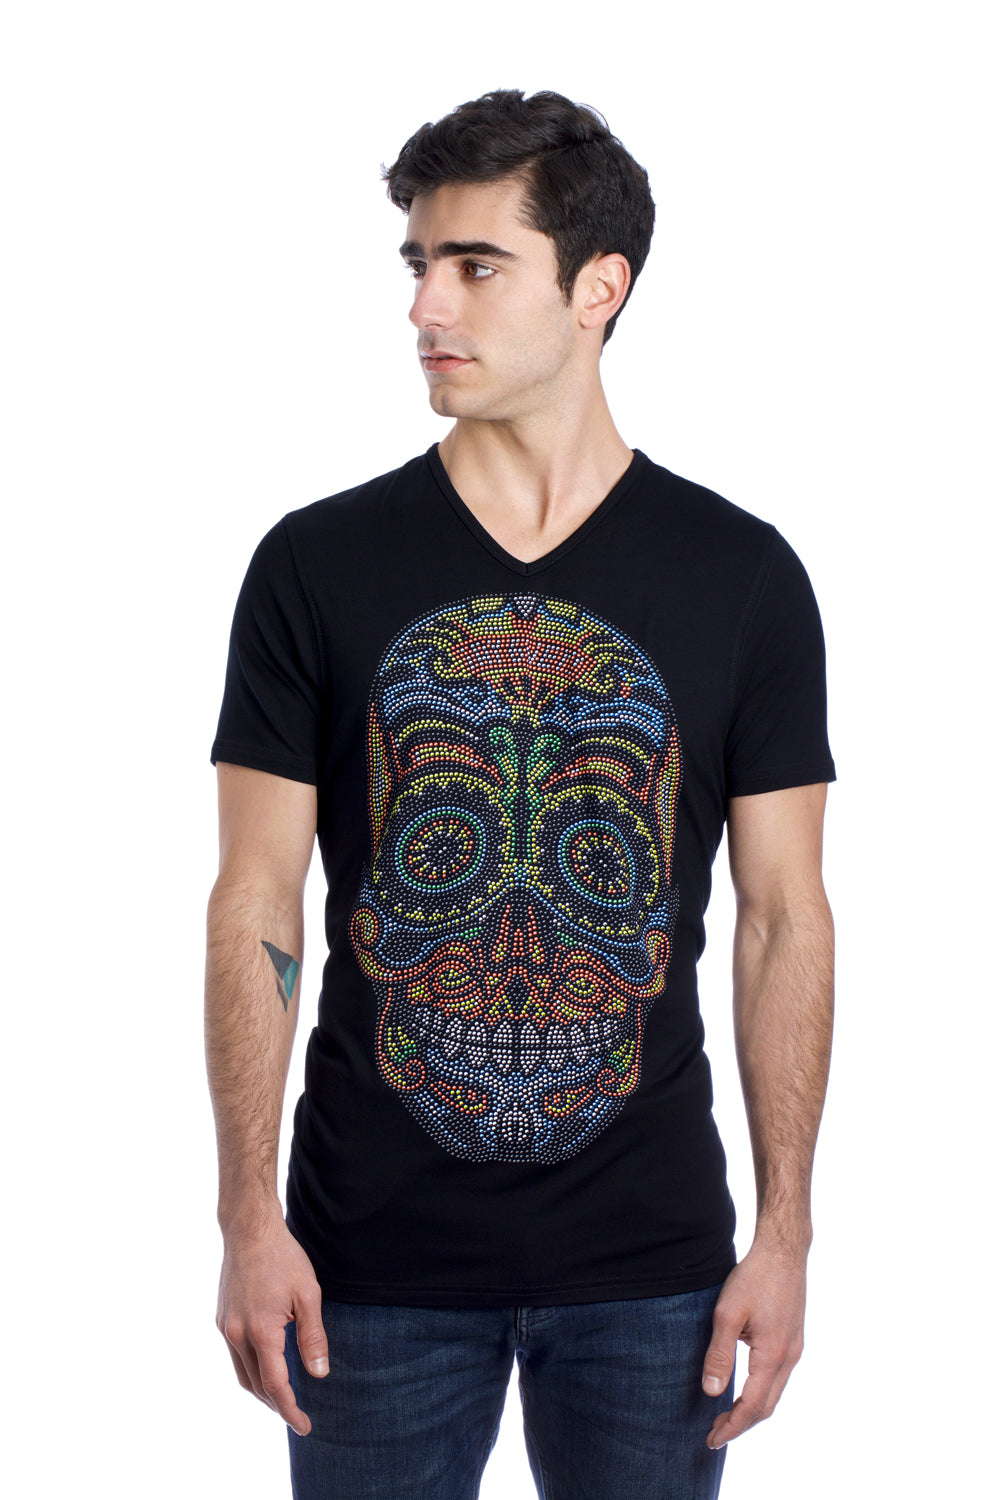 CALAVERAS SWA - T-Shirt Men - ¡Ay Güey! USA